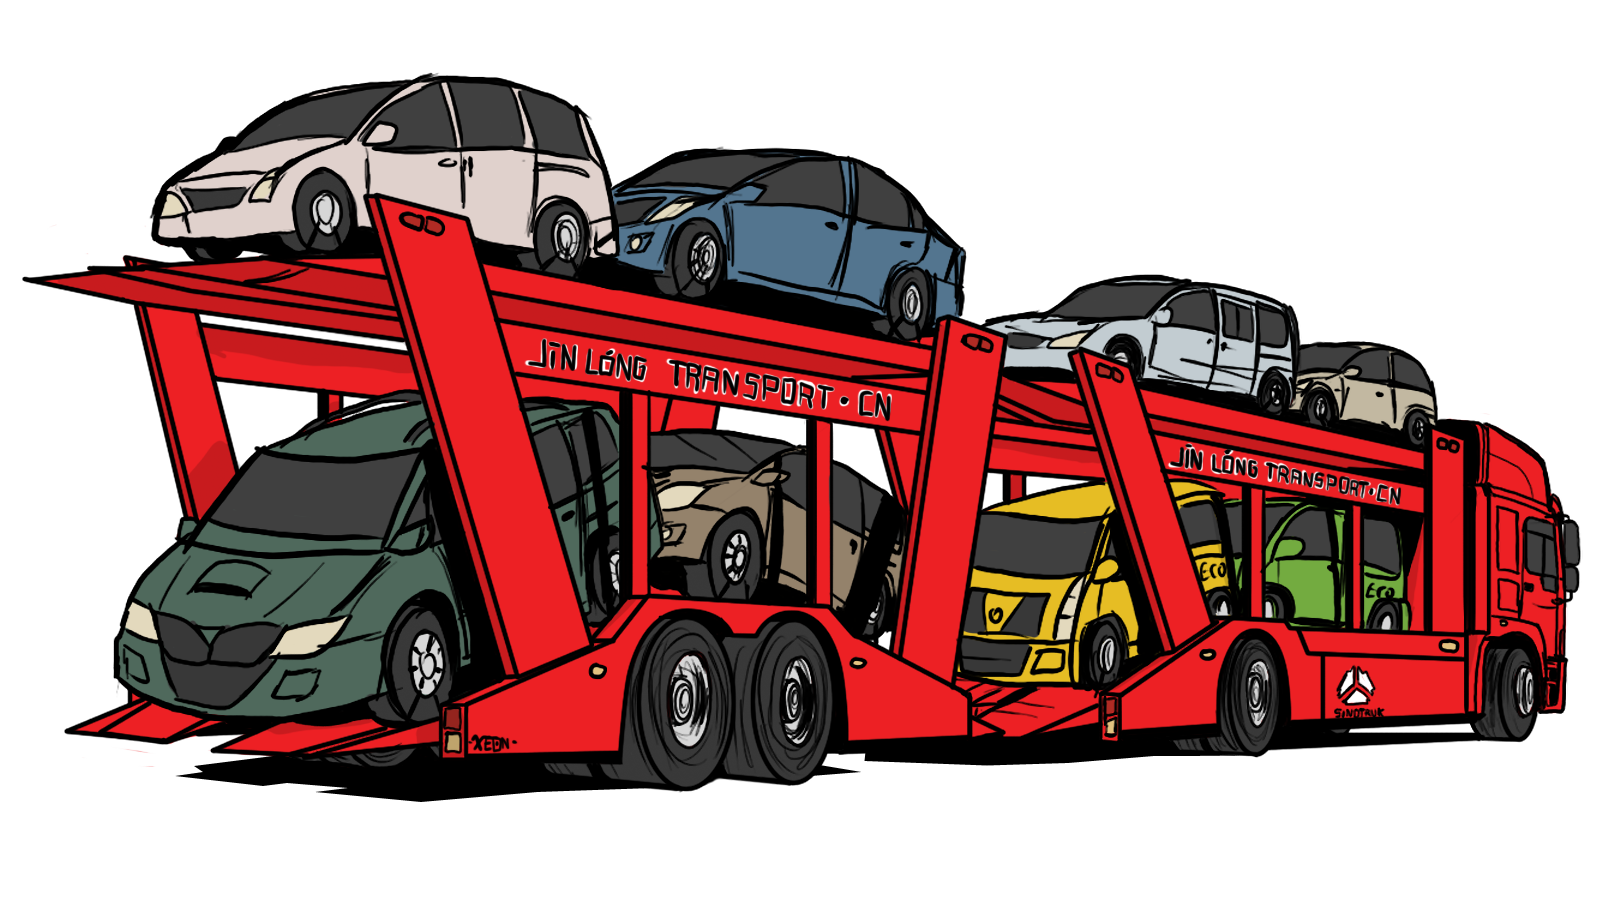 Car transporter clipart banner freeuse library Car carrier trailer Transport Vehicle China National Heavy Duty ... banner freeuse library